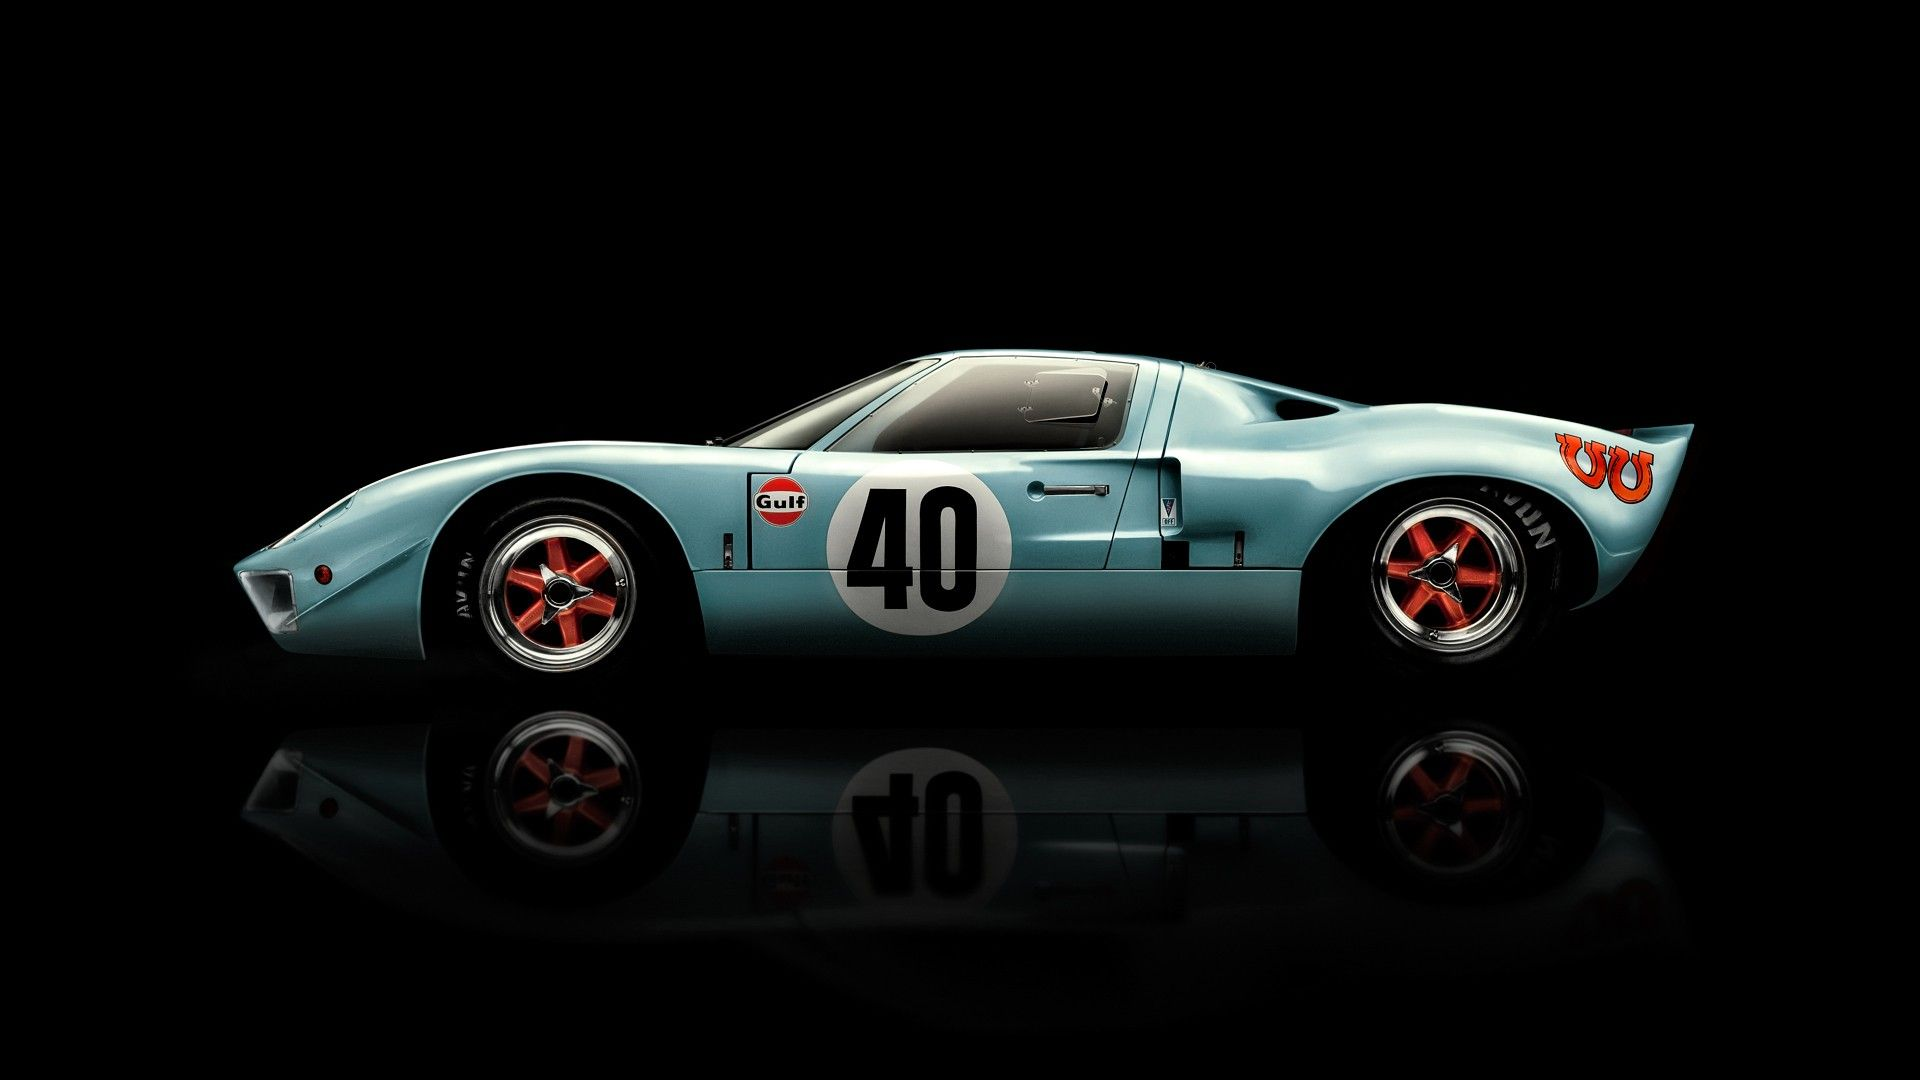 1968 Ford Gt 40 Wallpaper Ford Gt40 Ford Racing Gt40